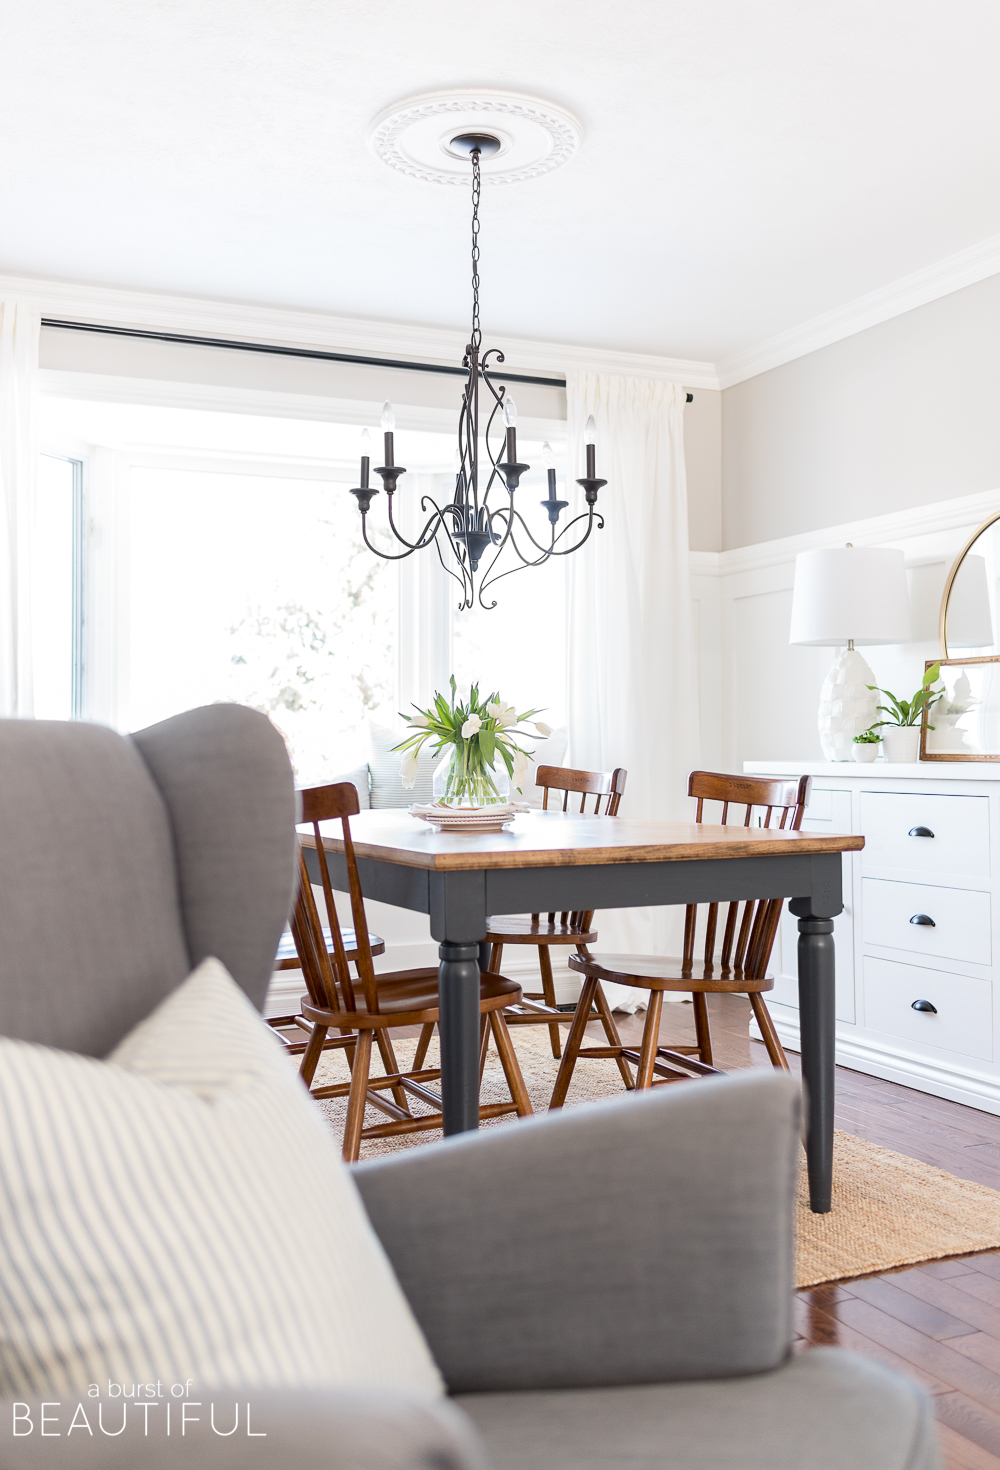 We are sharing 5 easy ways to decorate your home for spring, along with 20+ inspiring spring home tours.